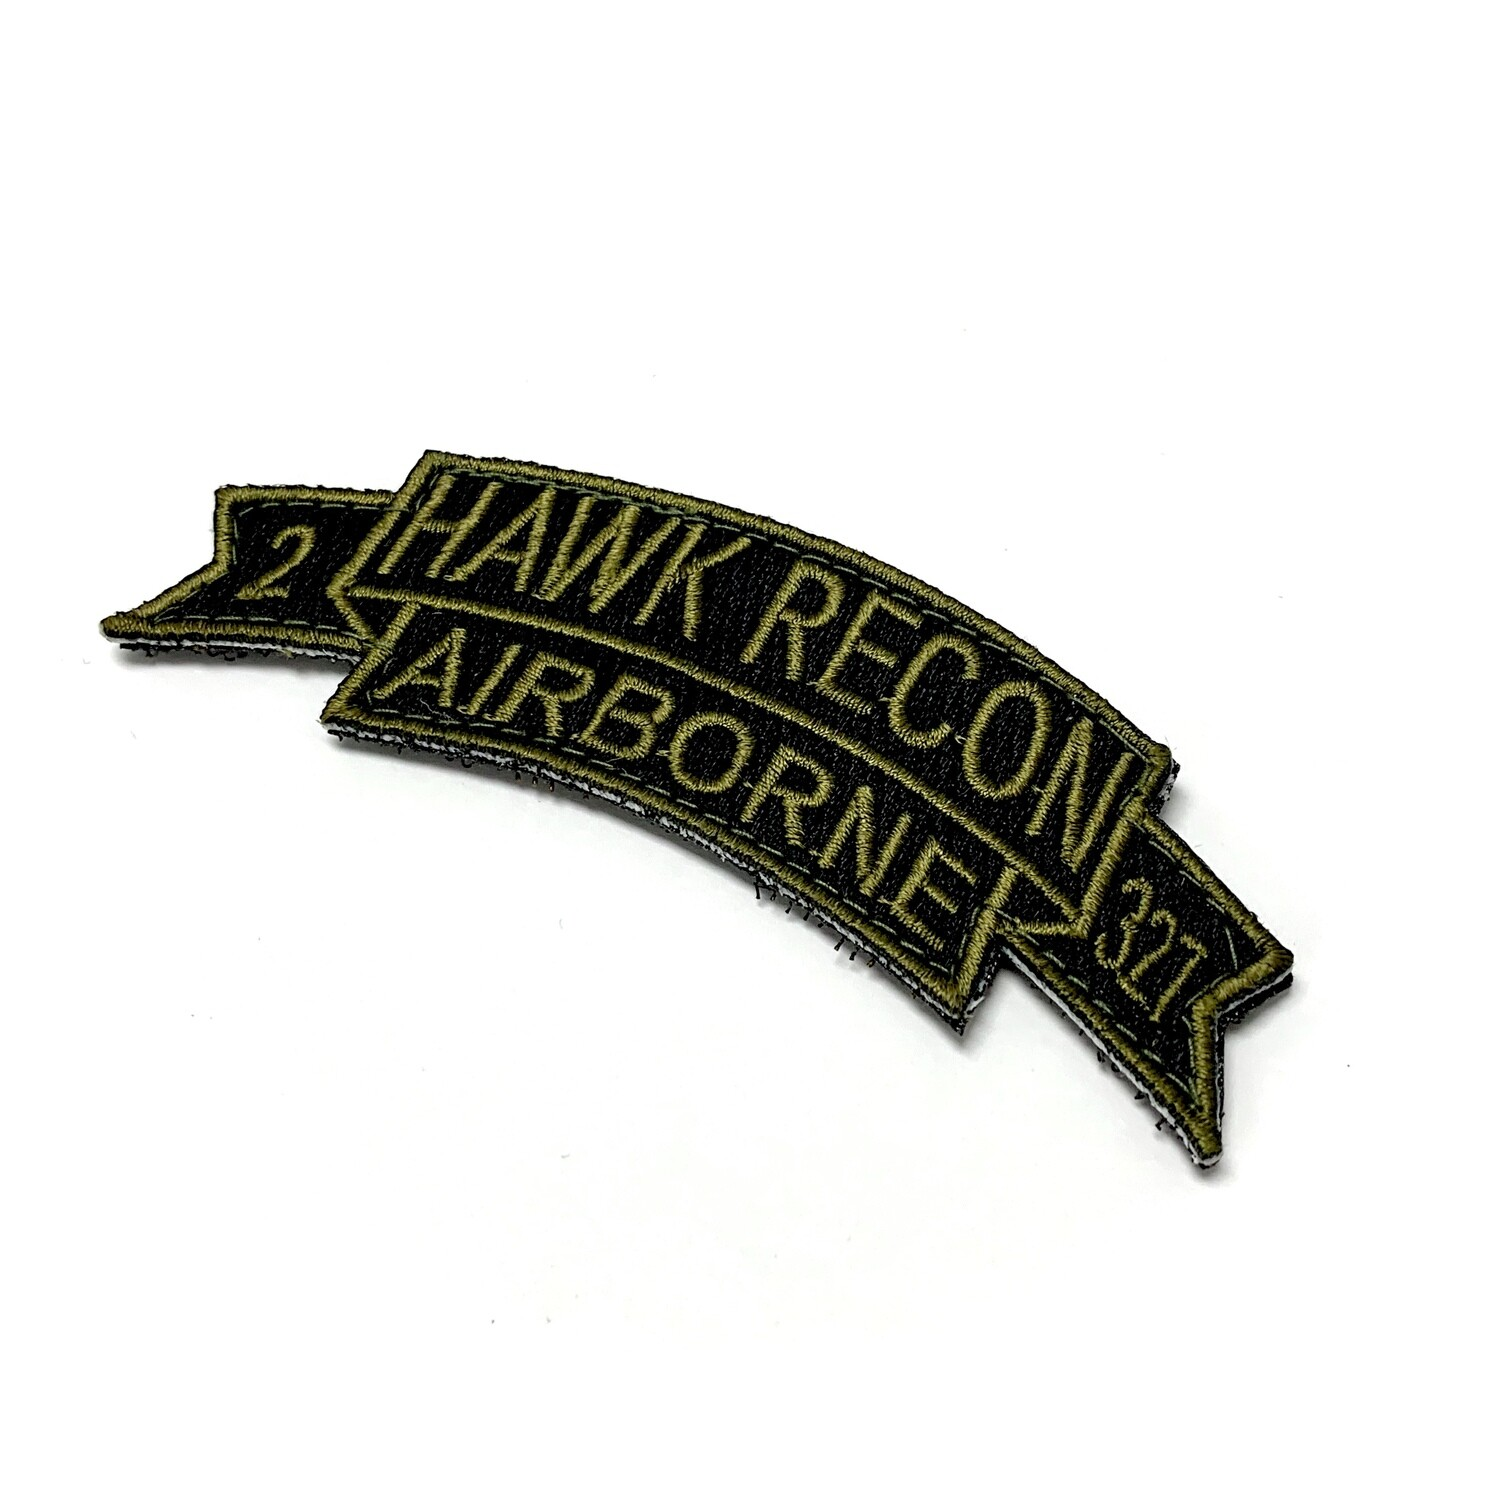 Hawk Recon 2-327th INF Patch